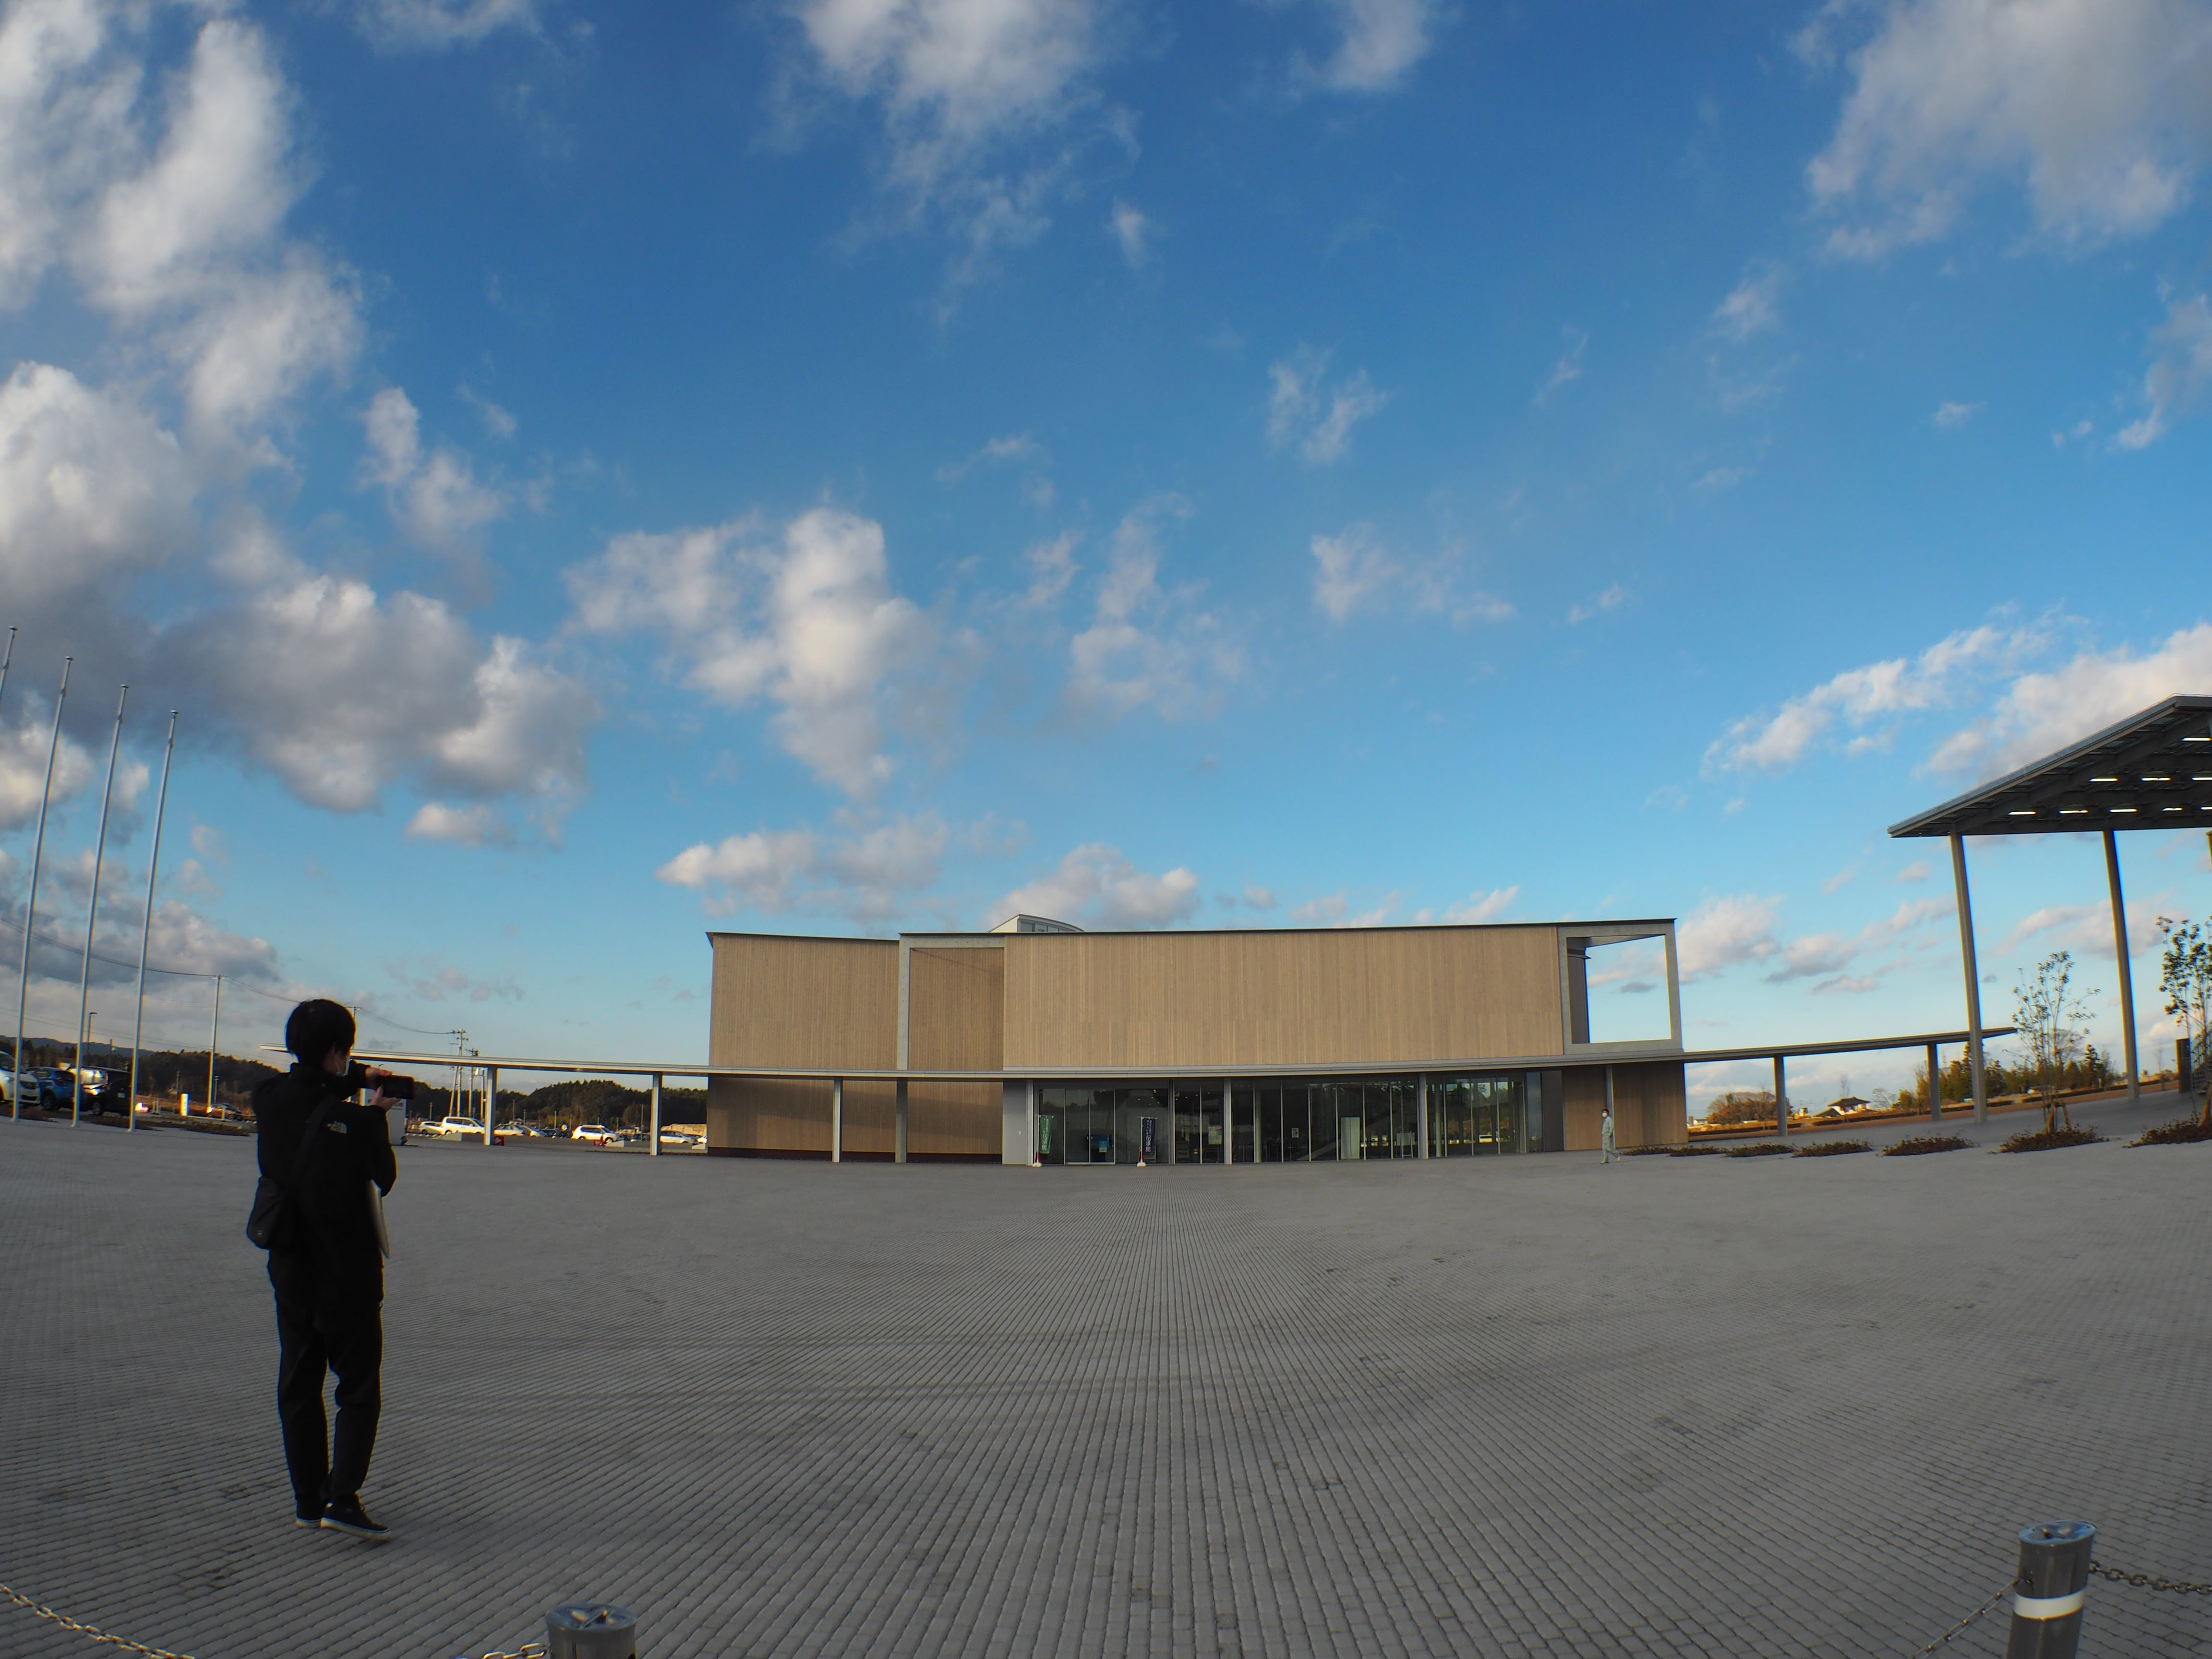 Great east japan earthquake and nuclear disaster memorial museum